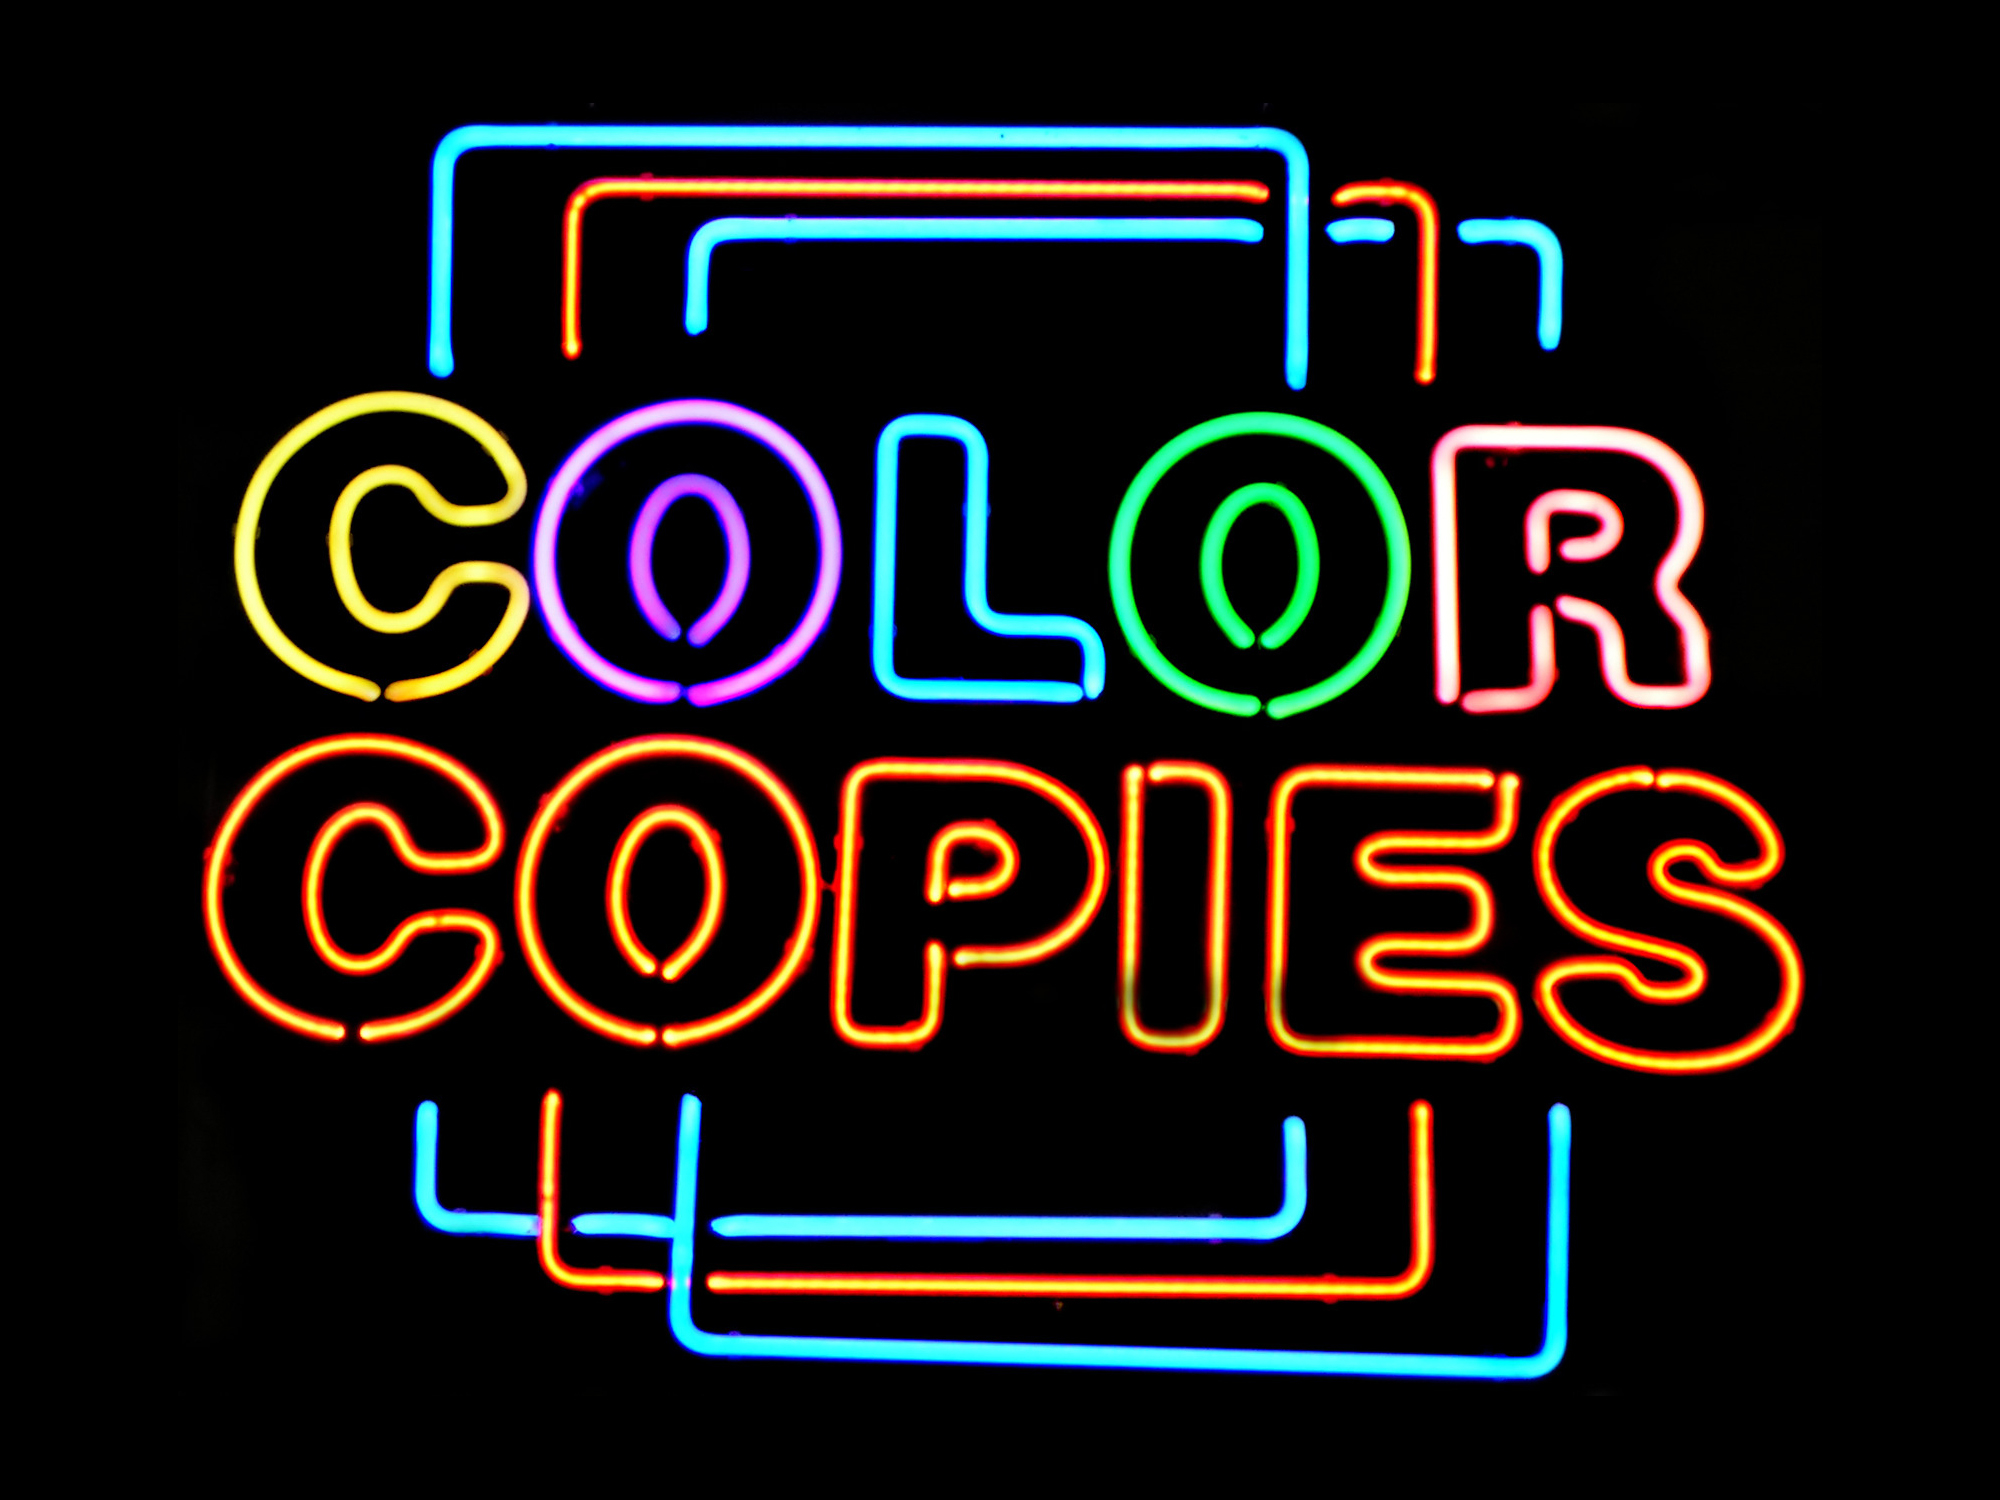 Copies- Color